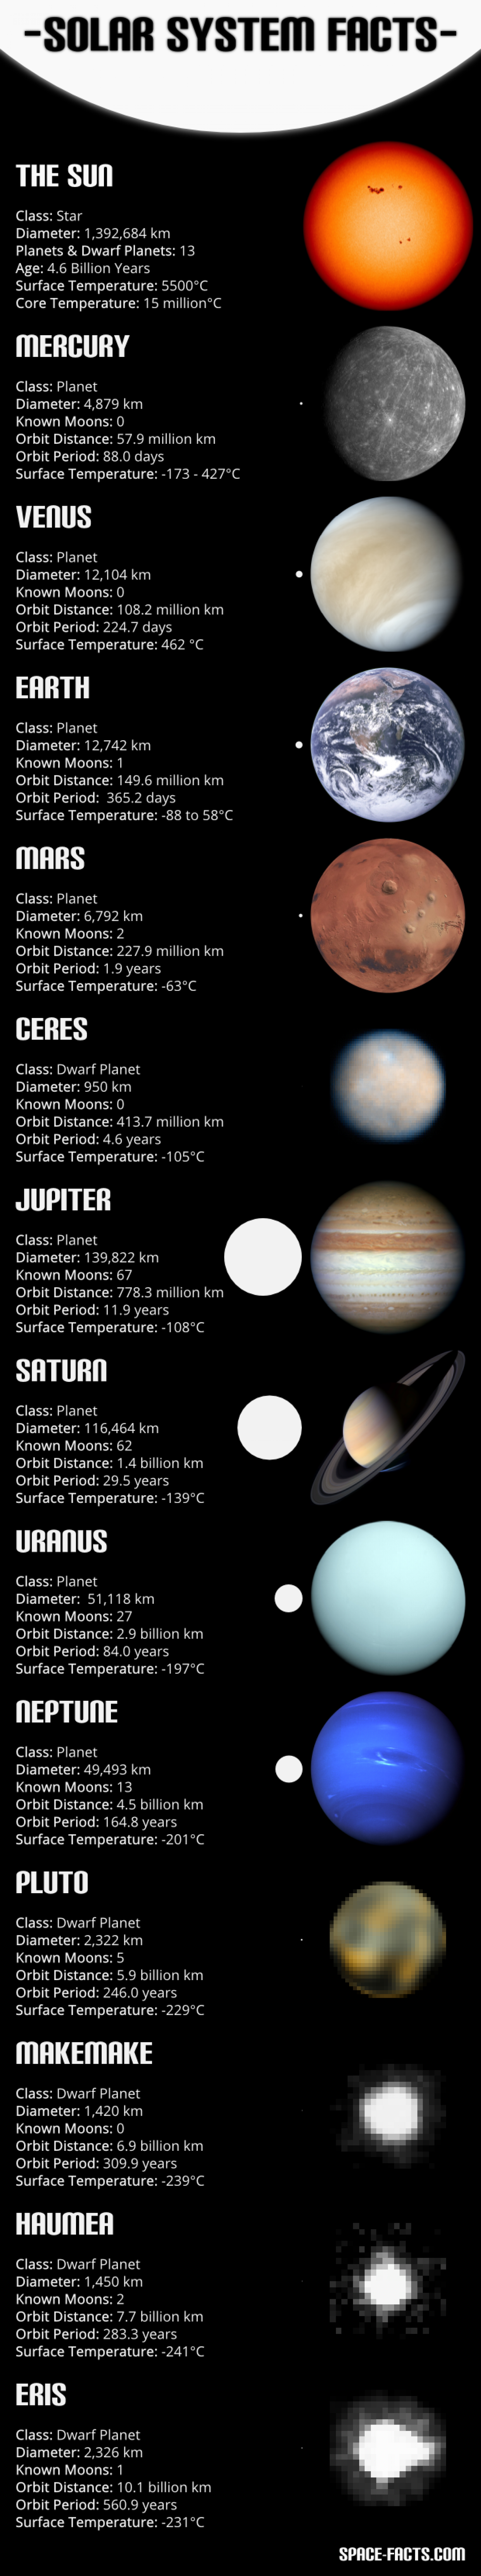 Solar System Facts Infographic